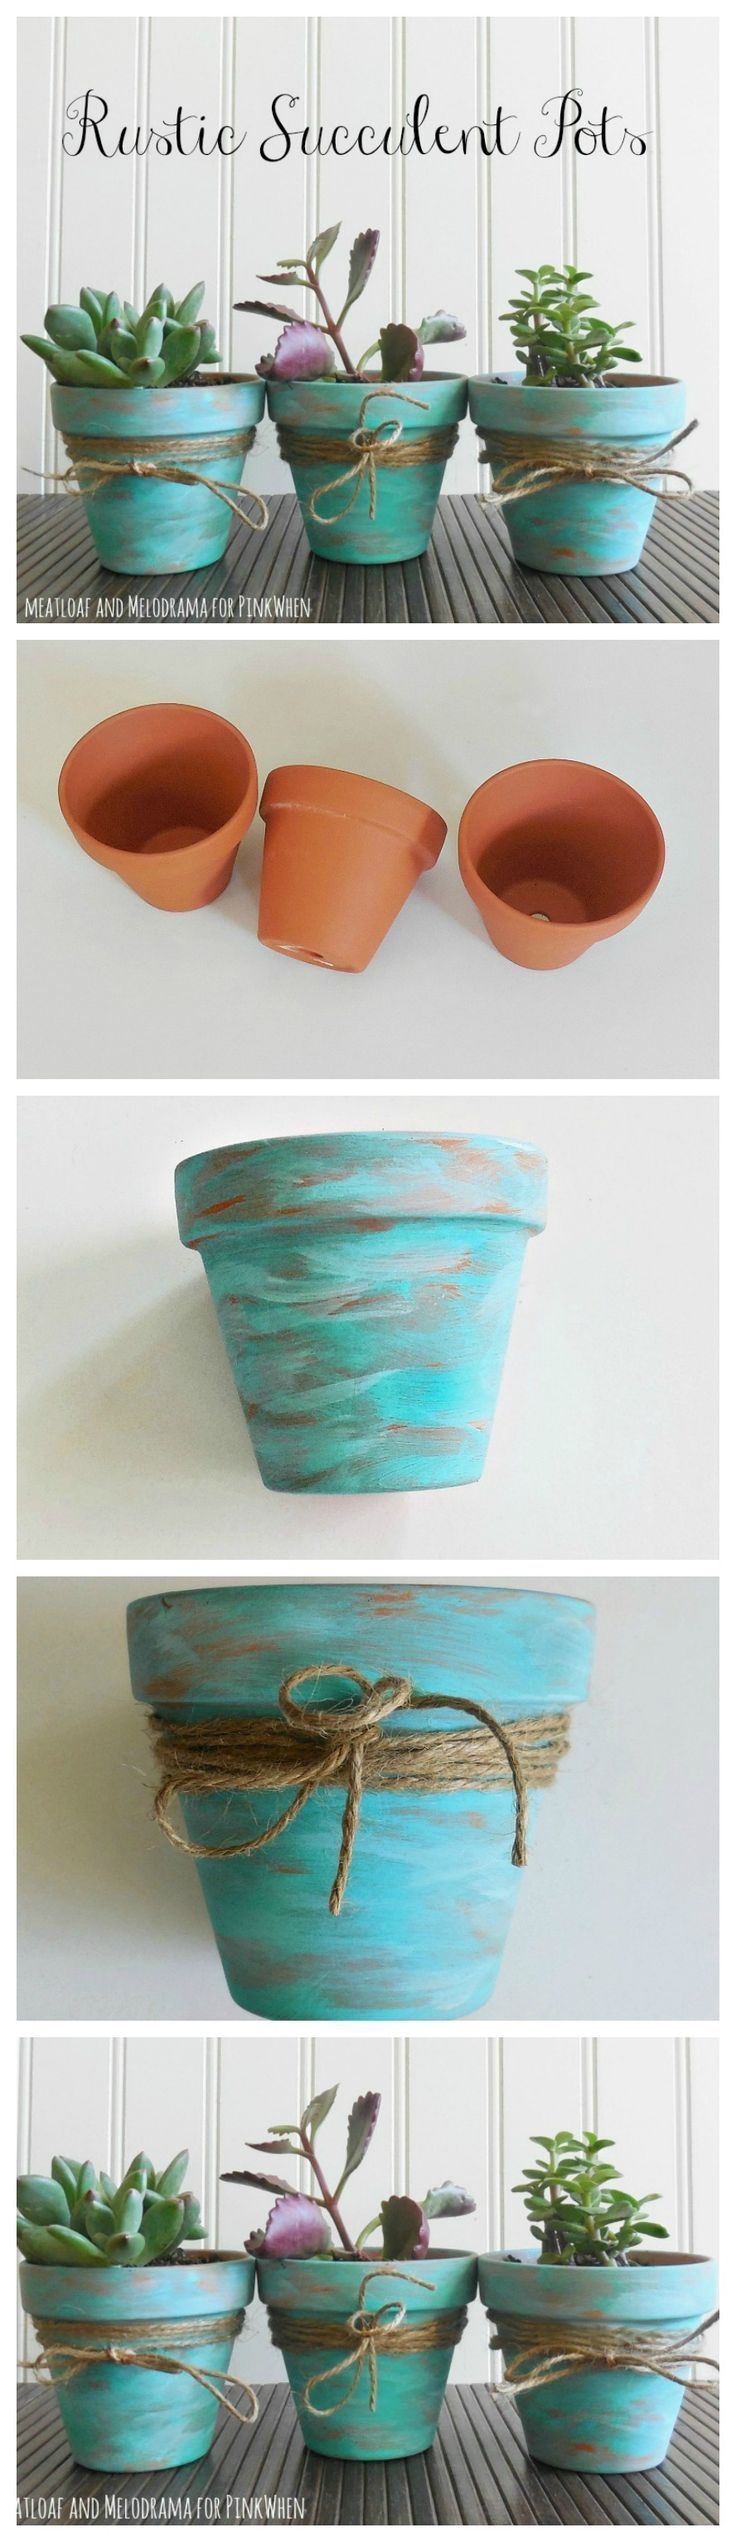 How to's : Love this simple DIY for these beautiful Rustic Succulent Pots.